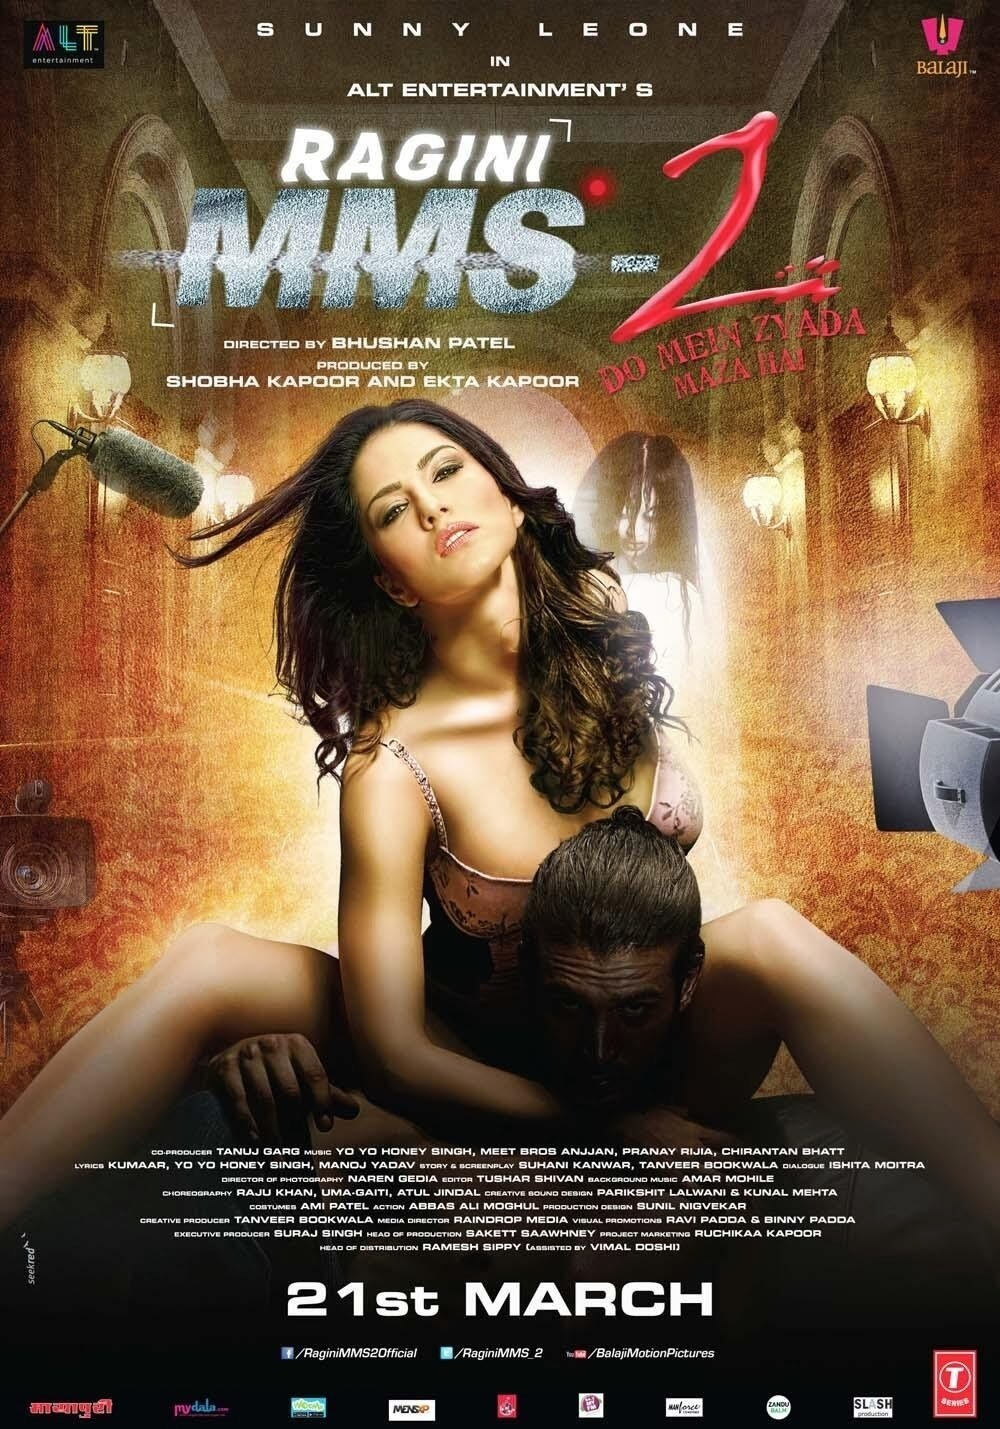 Ragini MMS 2 (2014) Hindi 720p Blu-Ray x264 5.1 ESubs